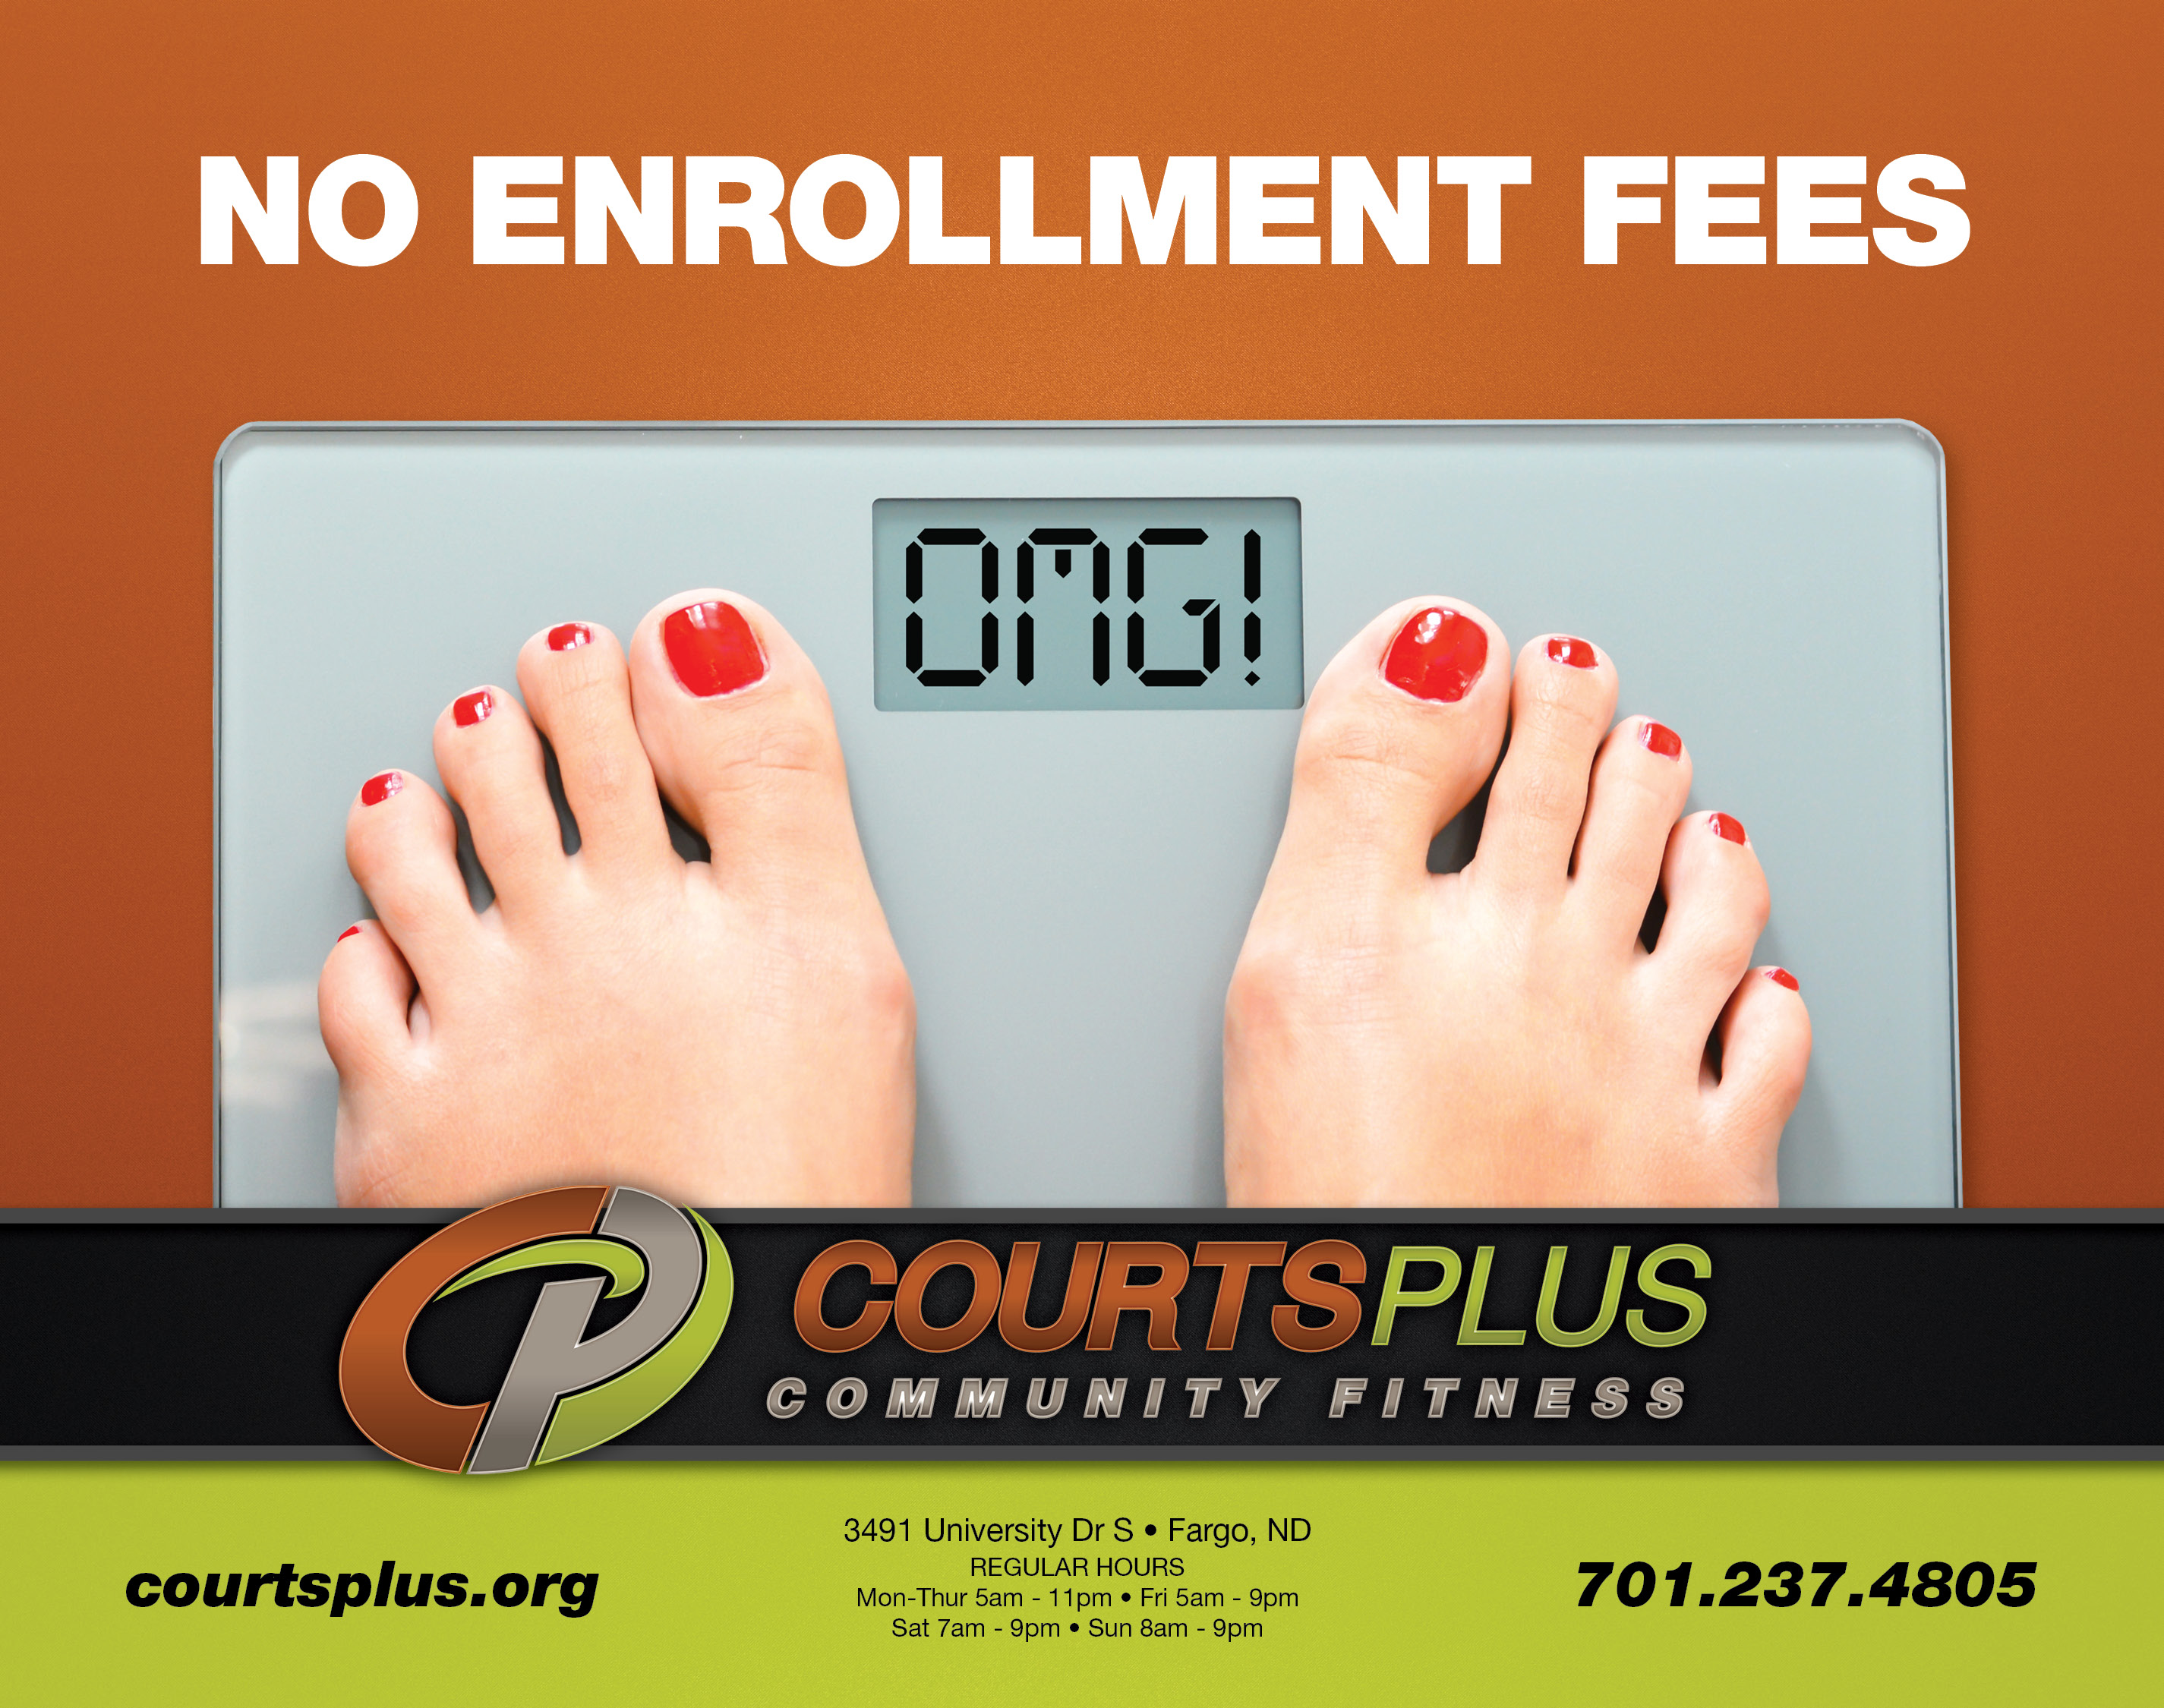 Courts Plus | Indoor Billboards | Off The Wall Advertising